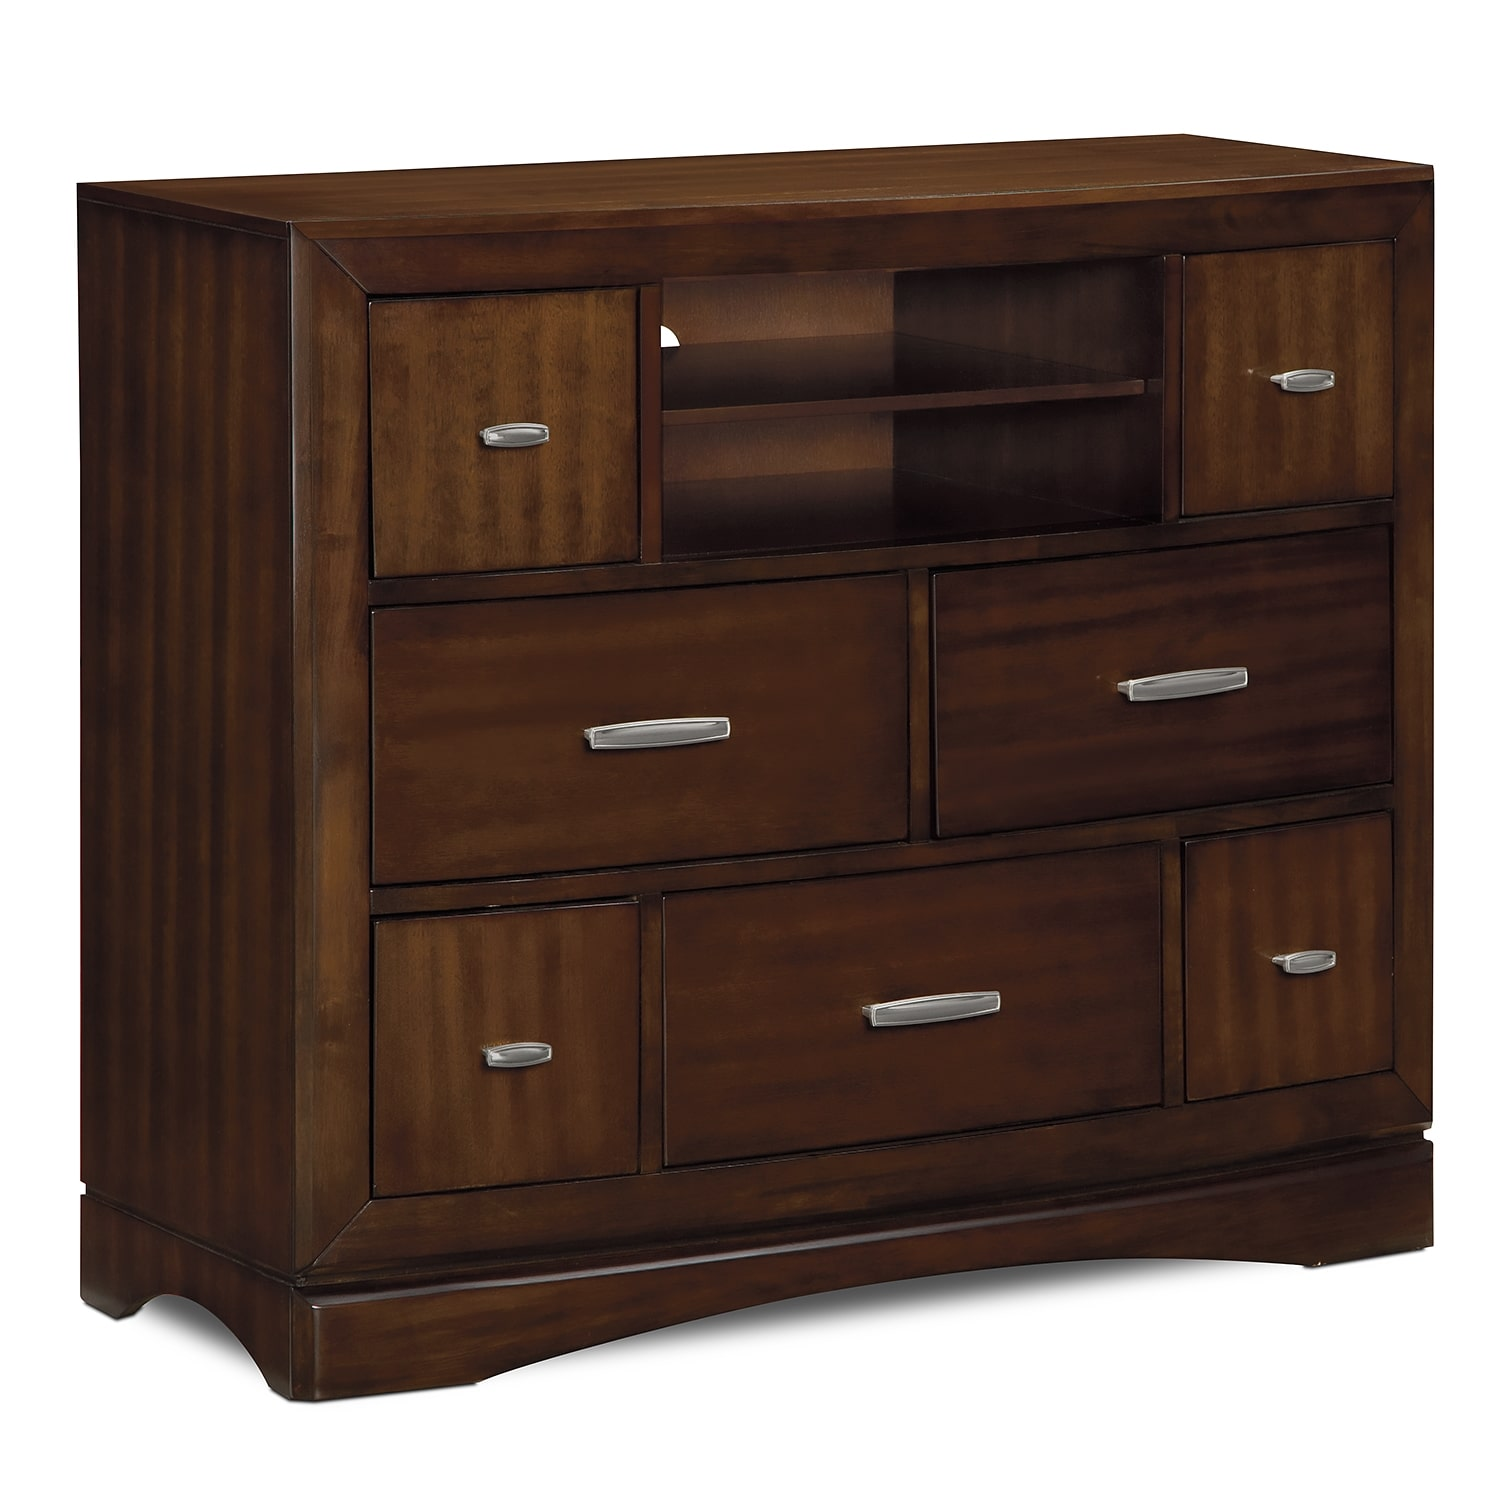 Tv Bedroom Furniture: Toronto Media Chest - Pecan